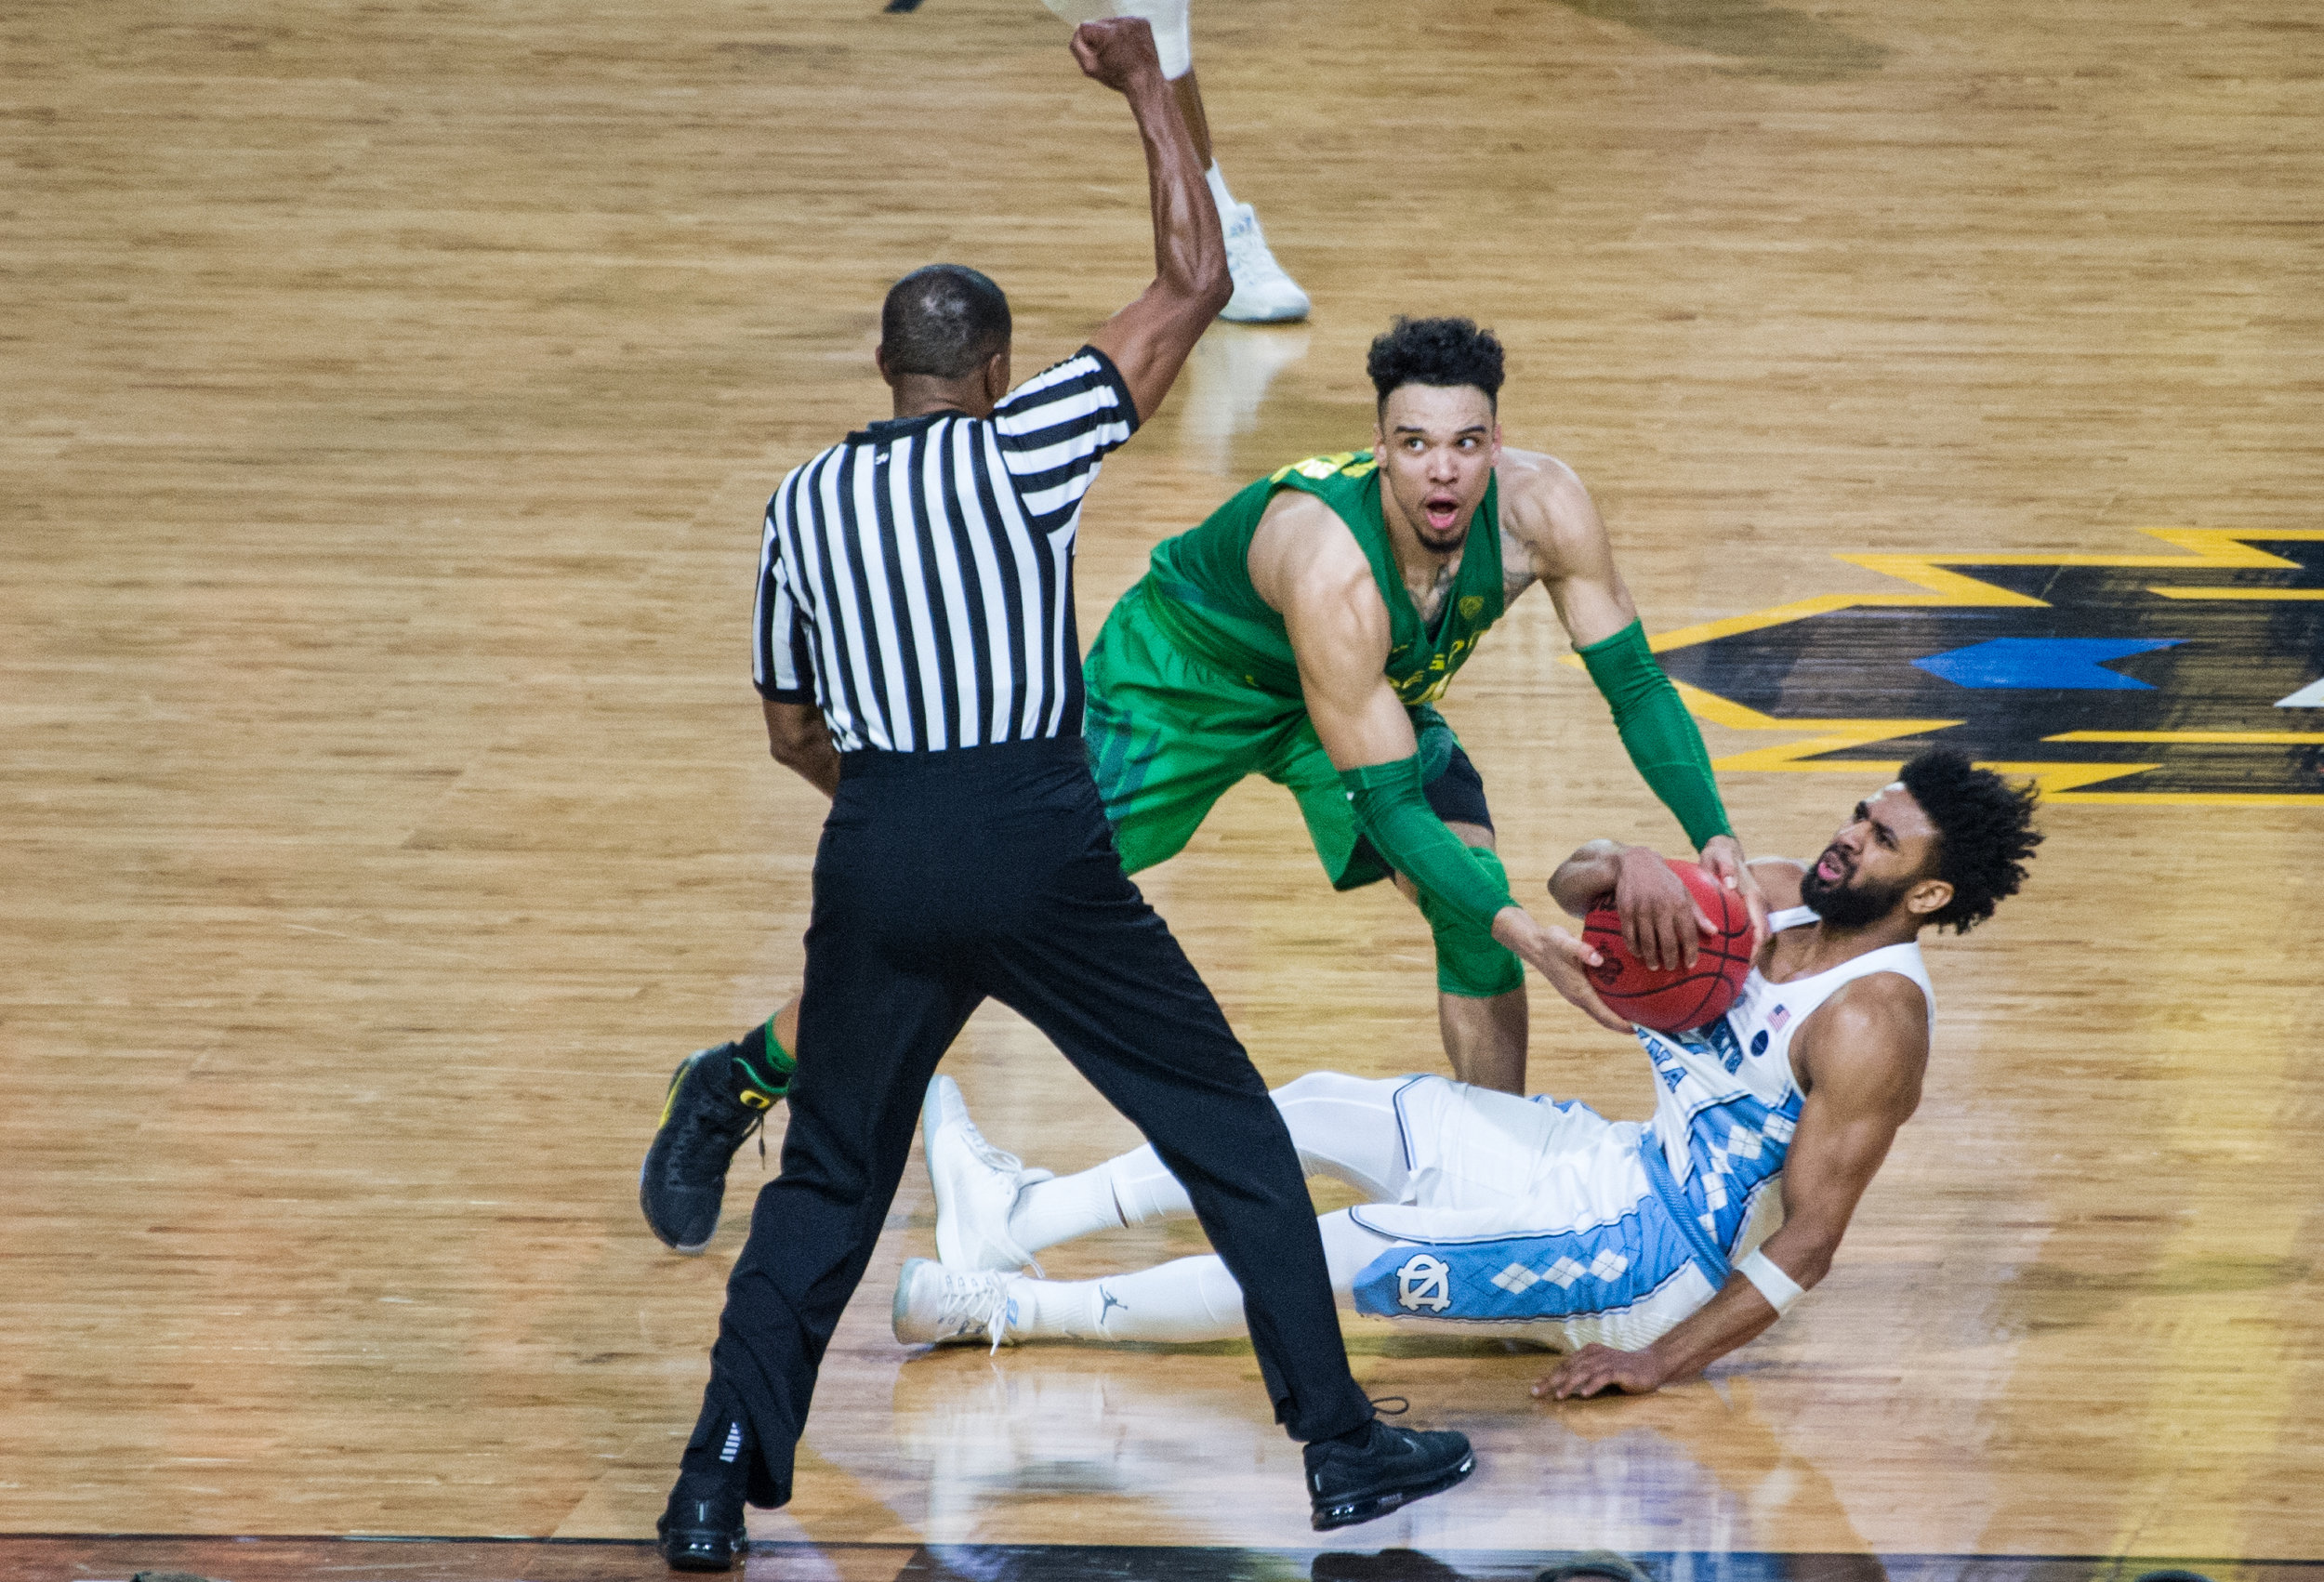 17.03.31.emg.an.final.four.oregon.vs.north.carolina-36.jpg